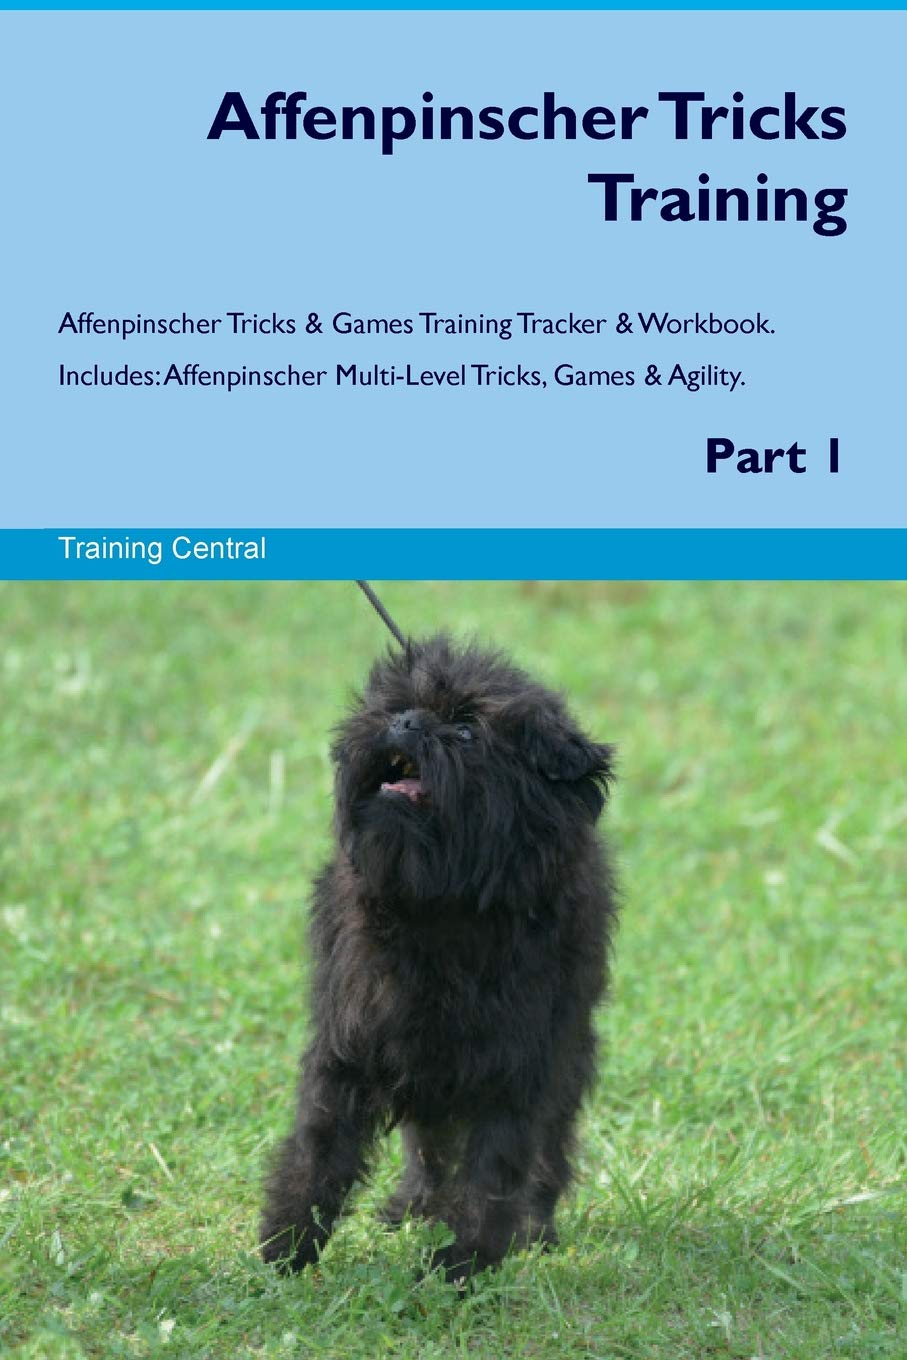 Affenpinscher Tricks Training Affenpinscher Tricks & Games Training Tracker & Workbook. Includes: Affenpinscher Multi-Level Tricks, Games & Agility. Part 1 pdf